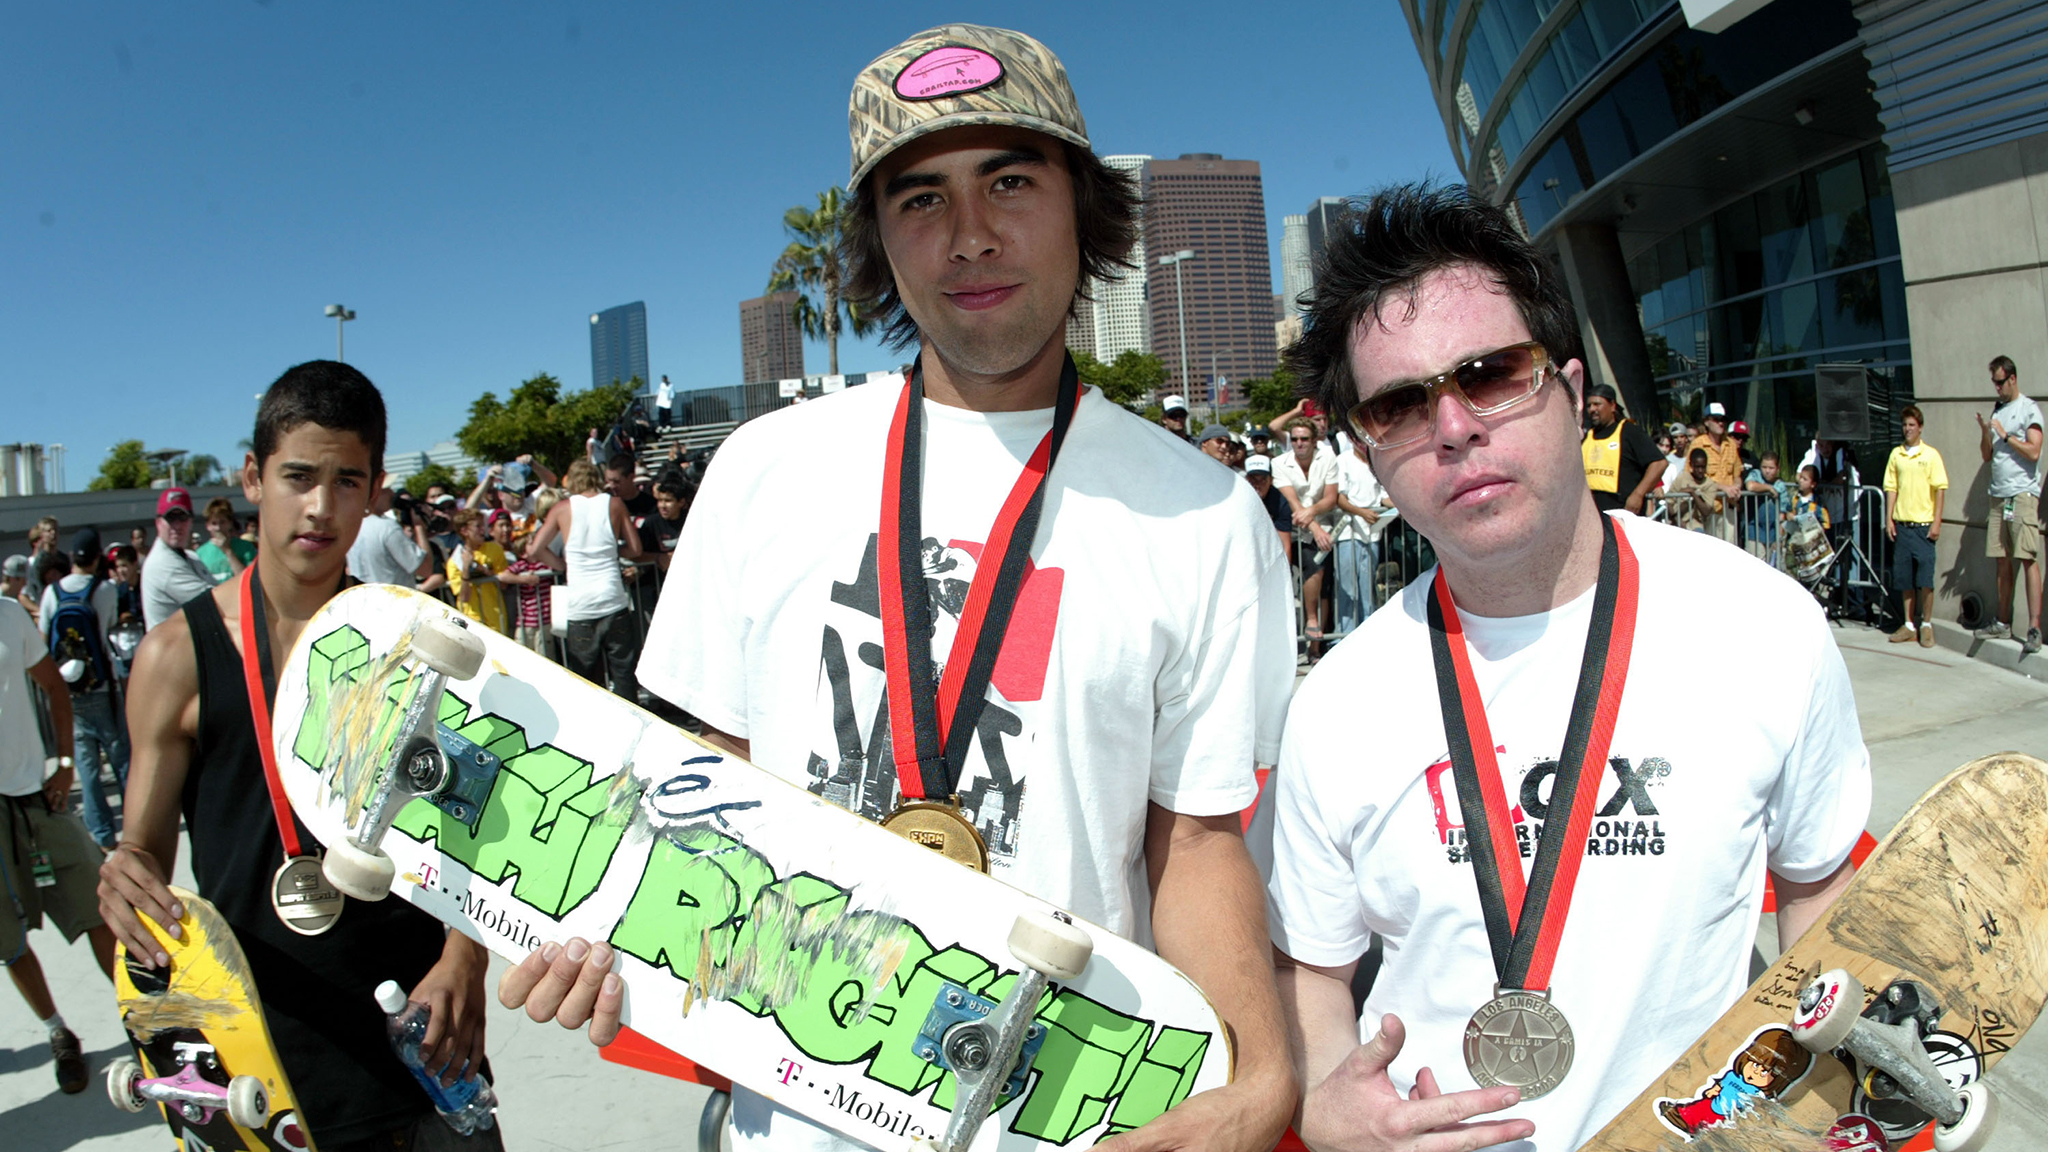 X Games comes to Los Angeles